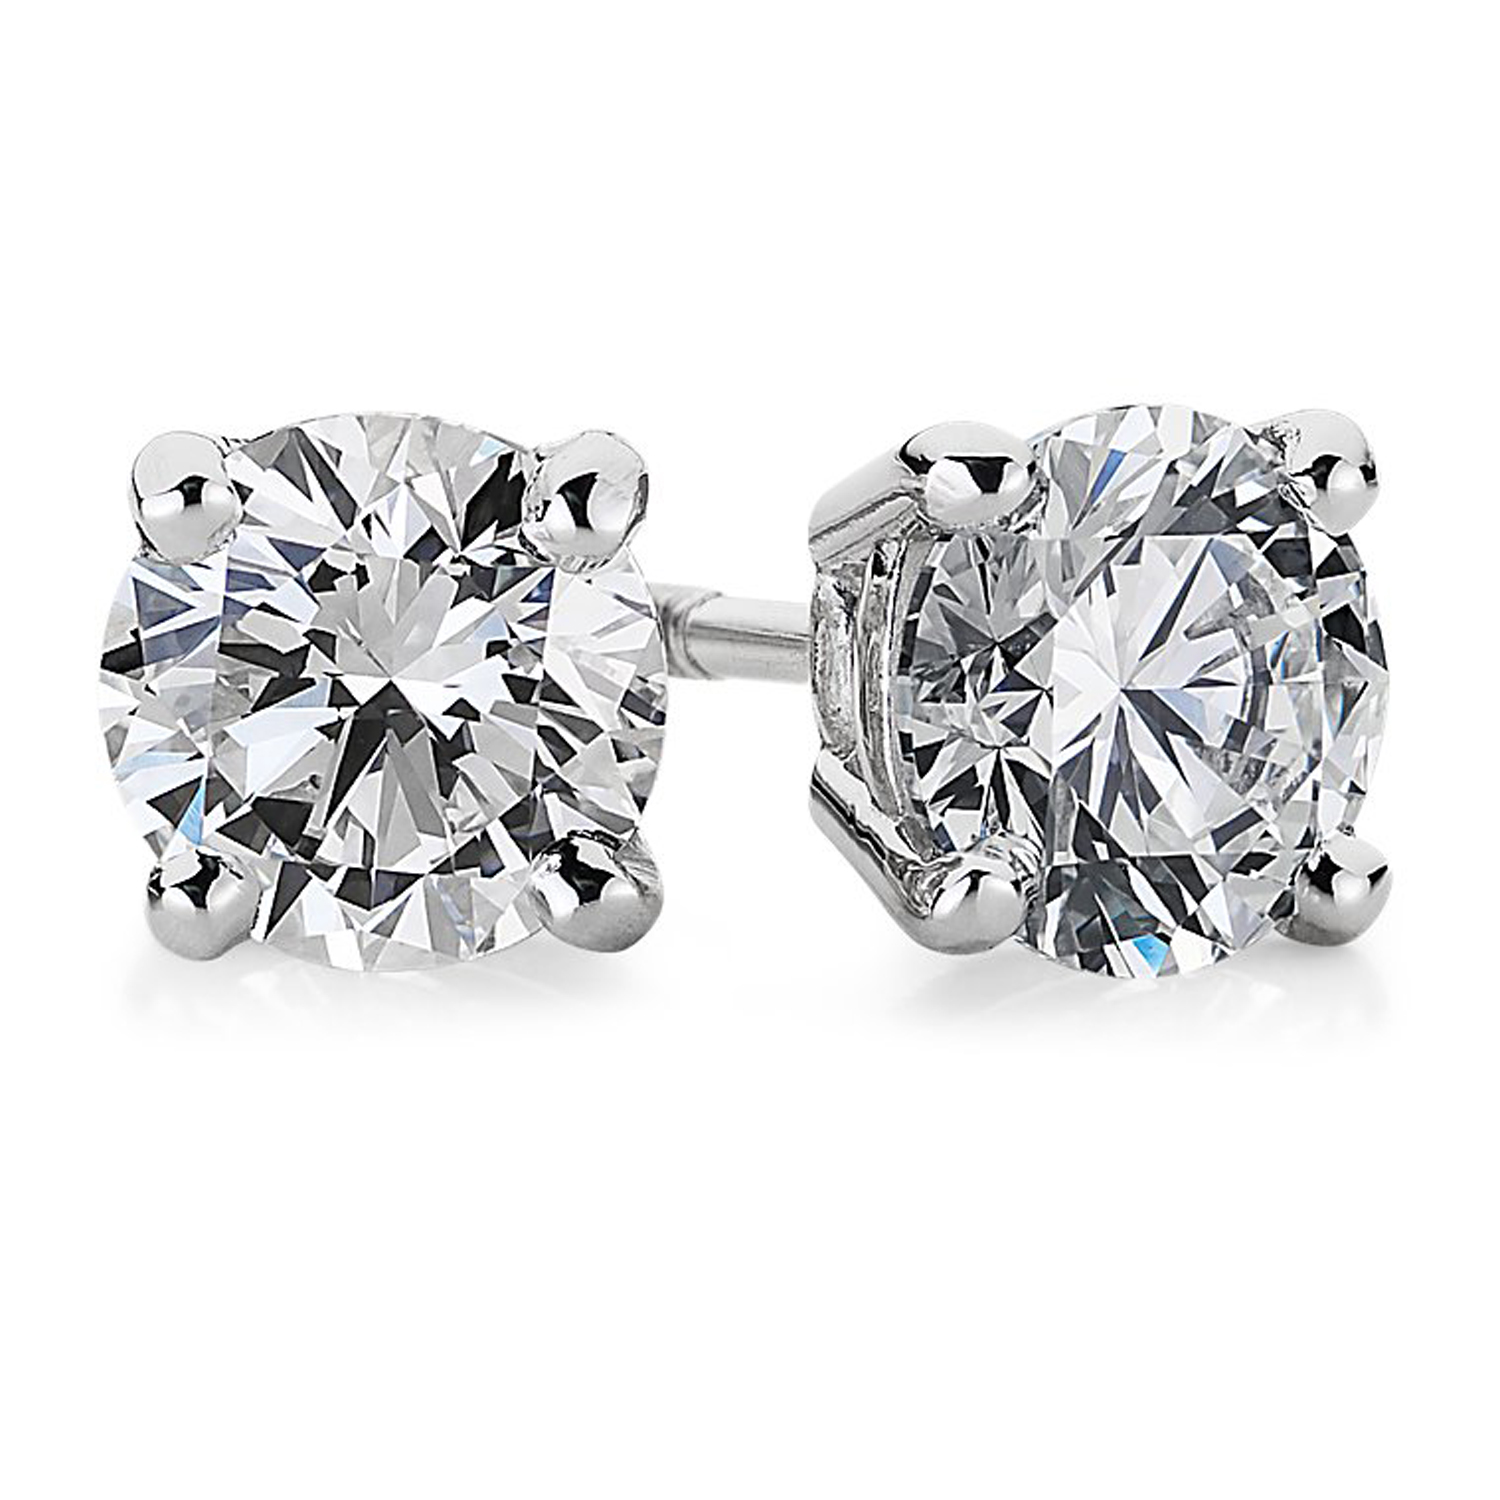 STUD-1CT-SI-G 1.0  CTTW  WG  SI 1 - SI 2 -  G TO H in Colour  Diamond Studs with Certificate